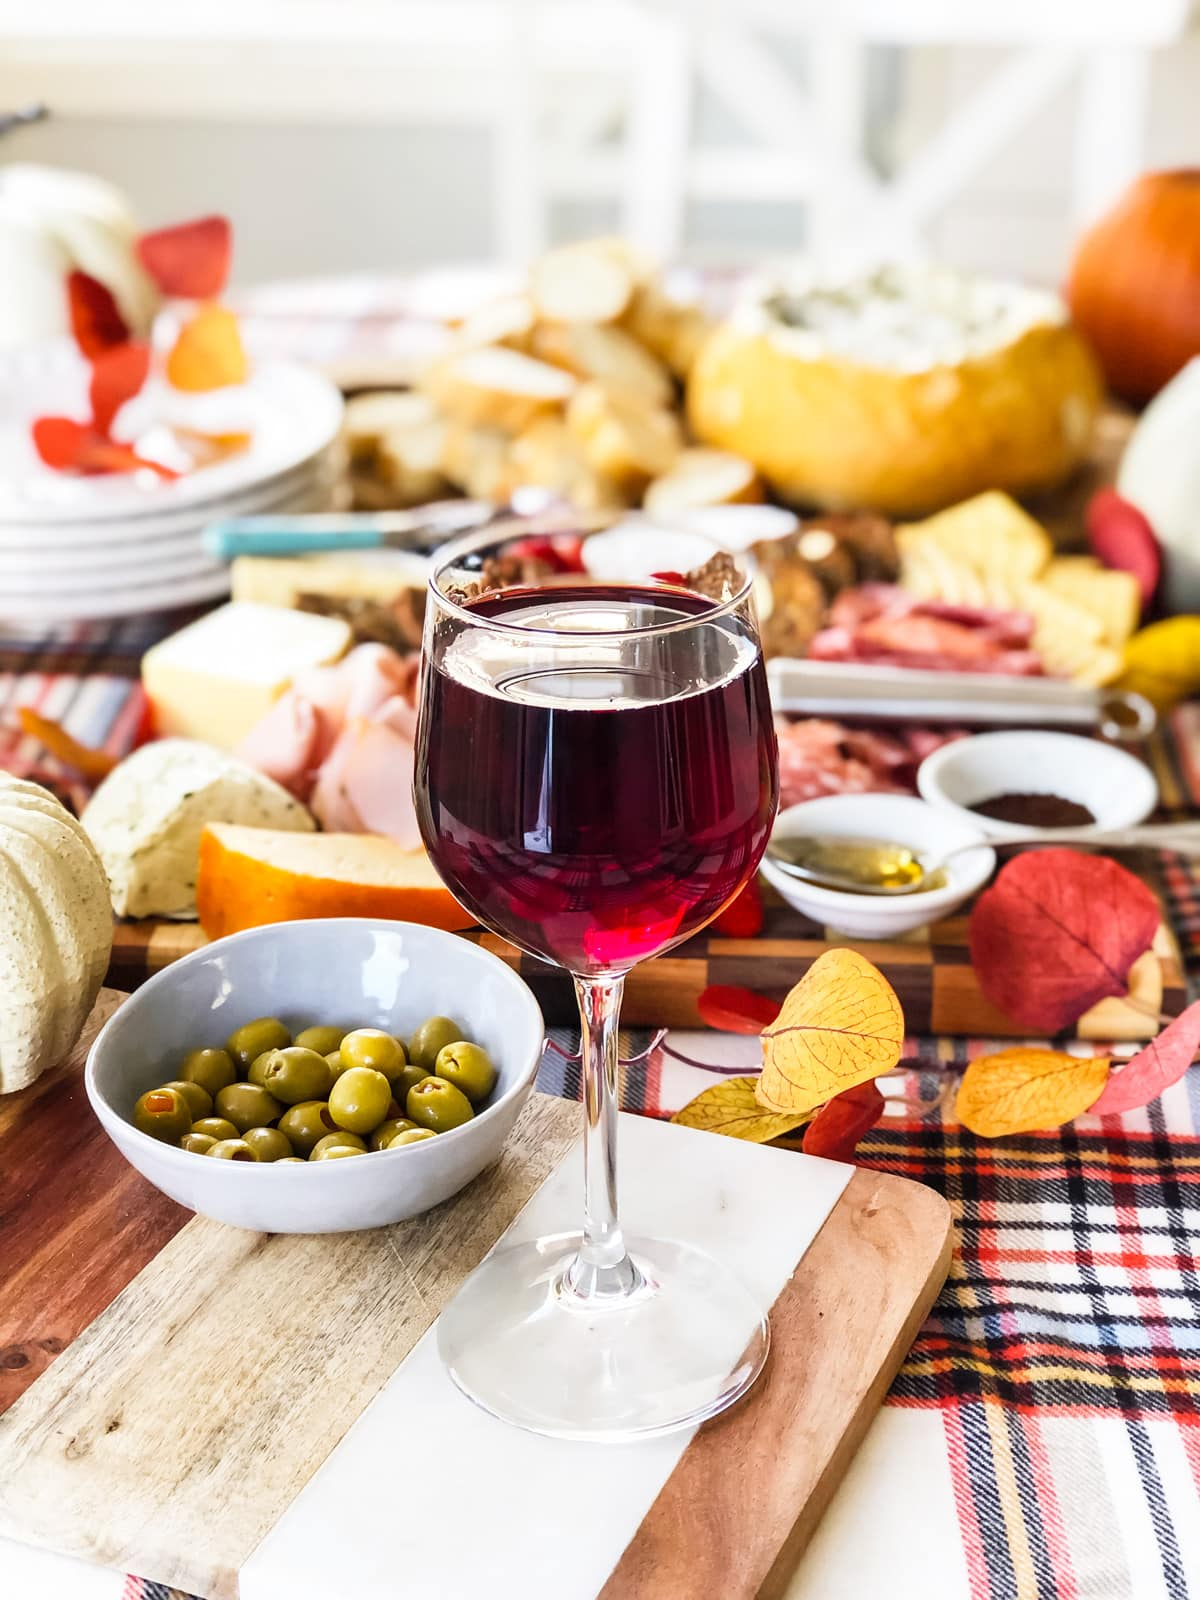 A glass of wine on a table full of delicious charcuterie, appetizers, dips and fruit